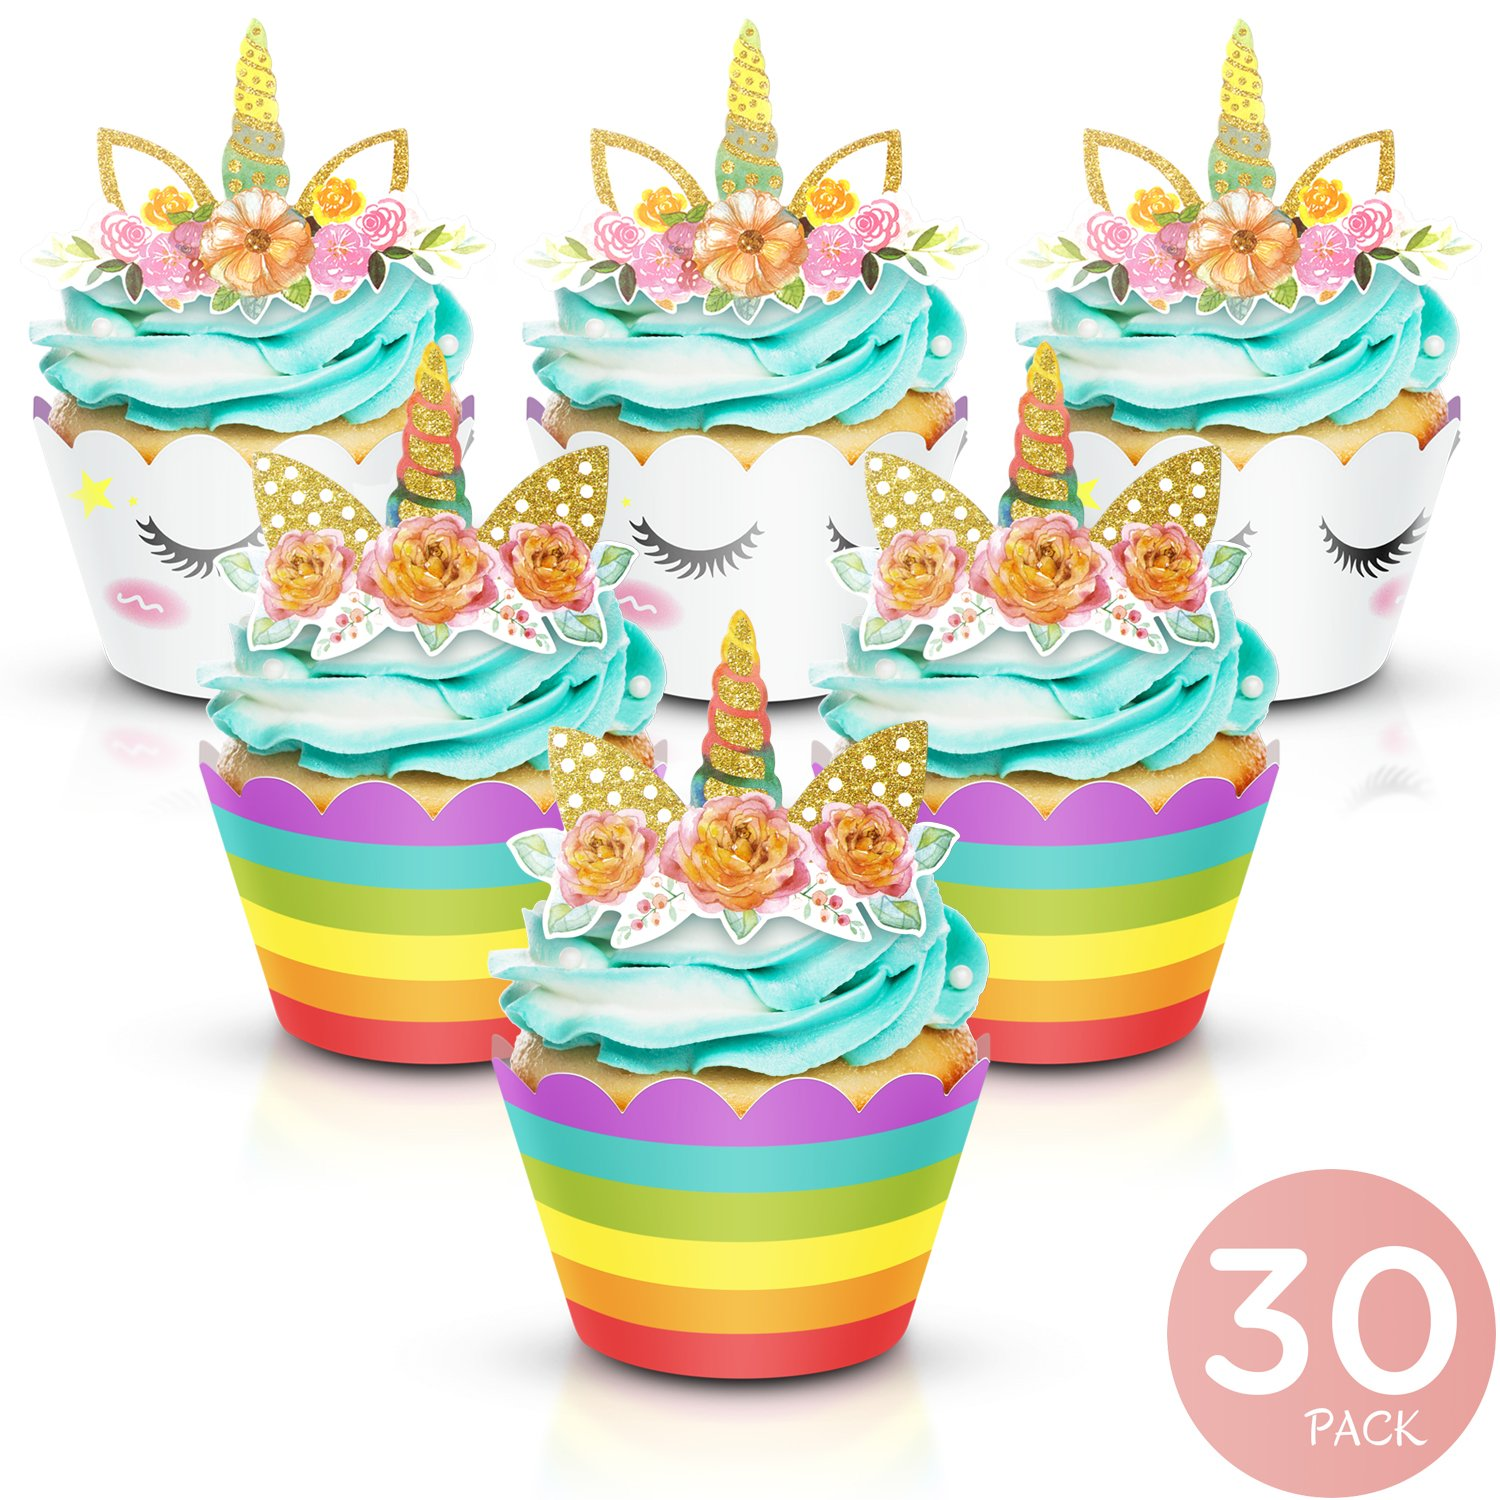 Augmist Unicorn Cupcake Toppers and Wrappers - Party Supplies for Birthday, Baby Shower, Valentine, Baby Shower - Double-Sided Glitter Design Cake Decorations. 30 Pairs